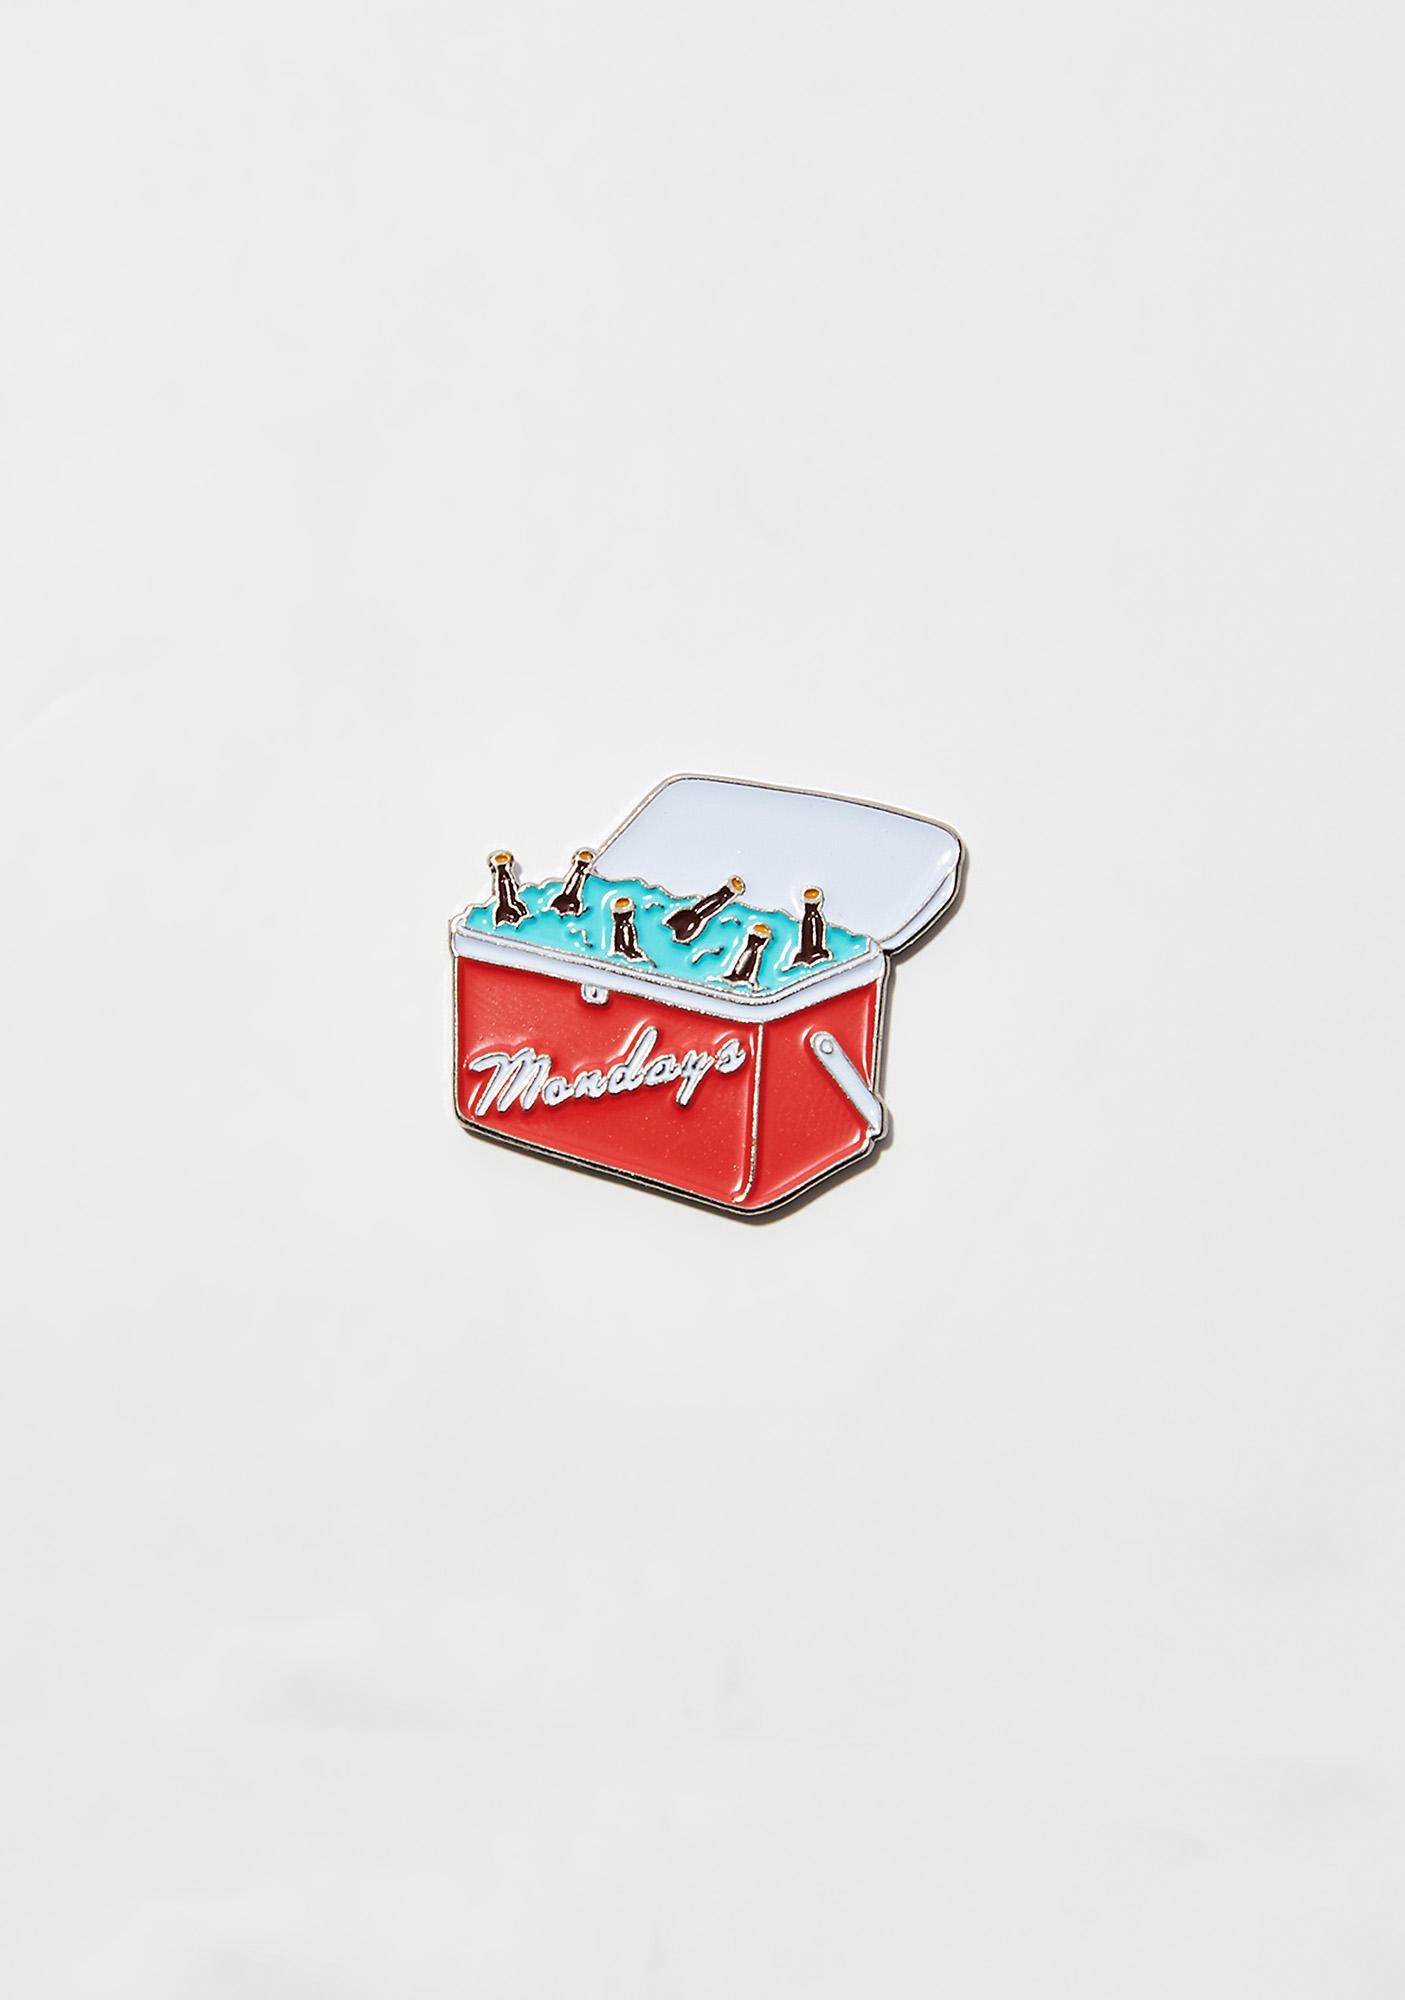 Rosehound Apparel Case Of Mondays Lapel Pin